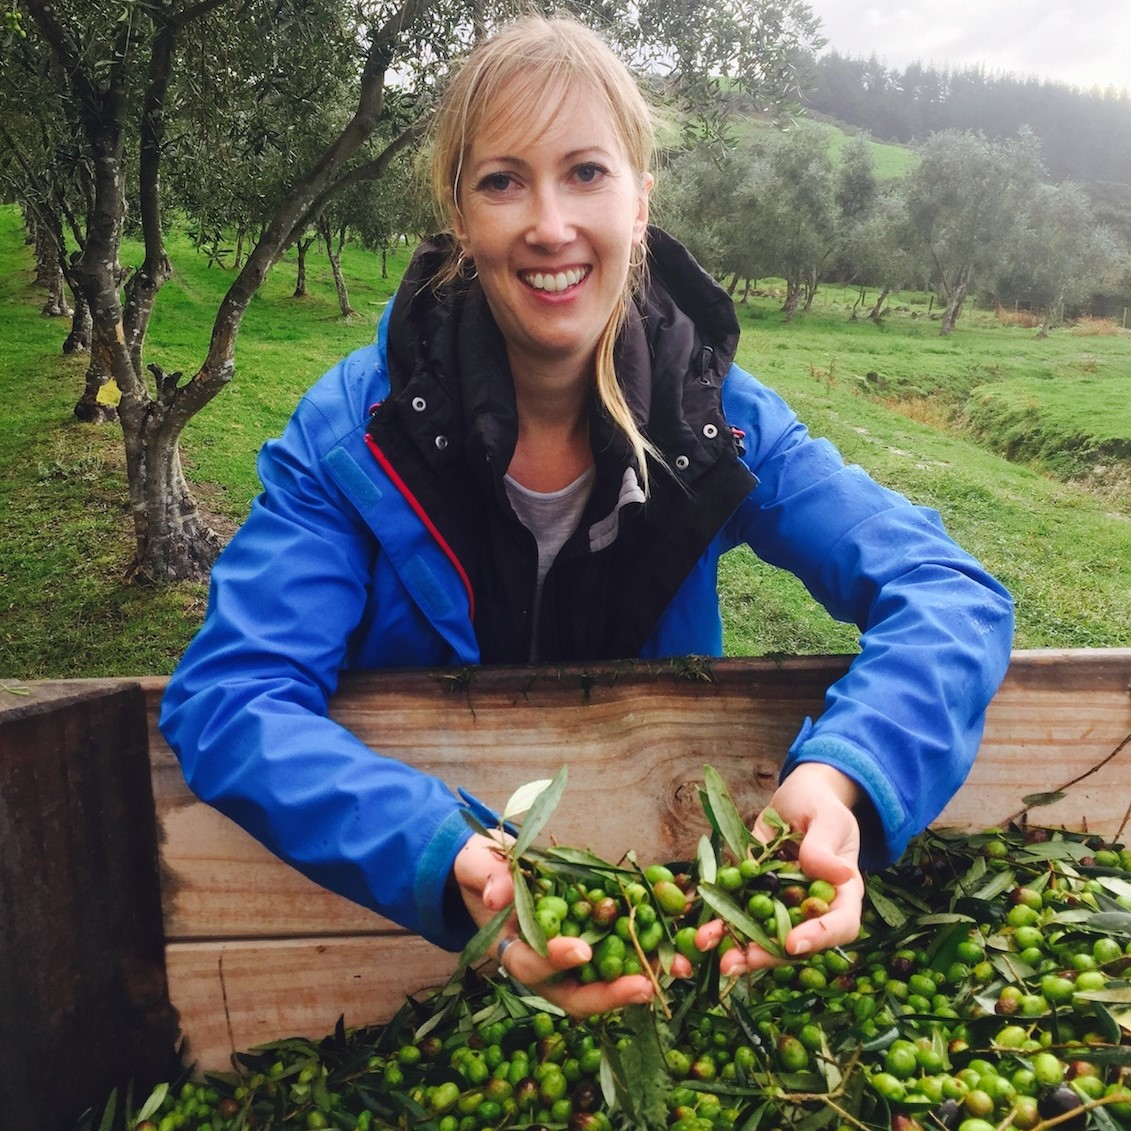 Nicky has her hands full at harvest time